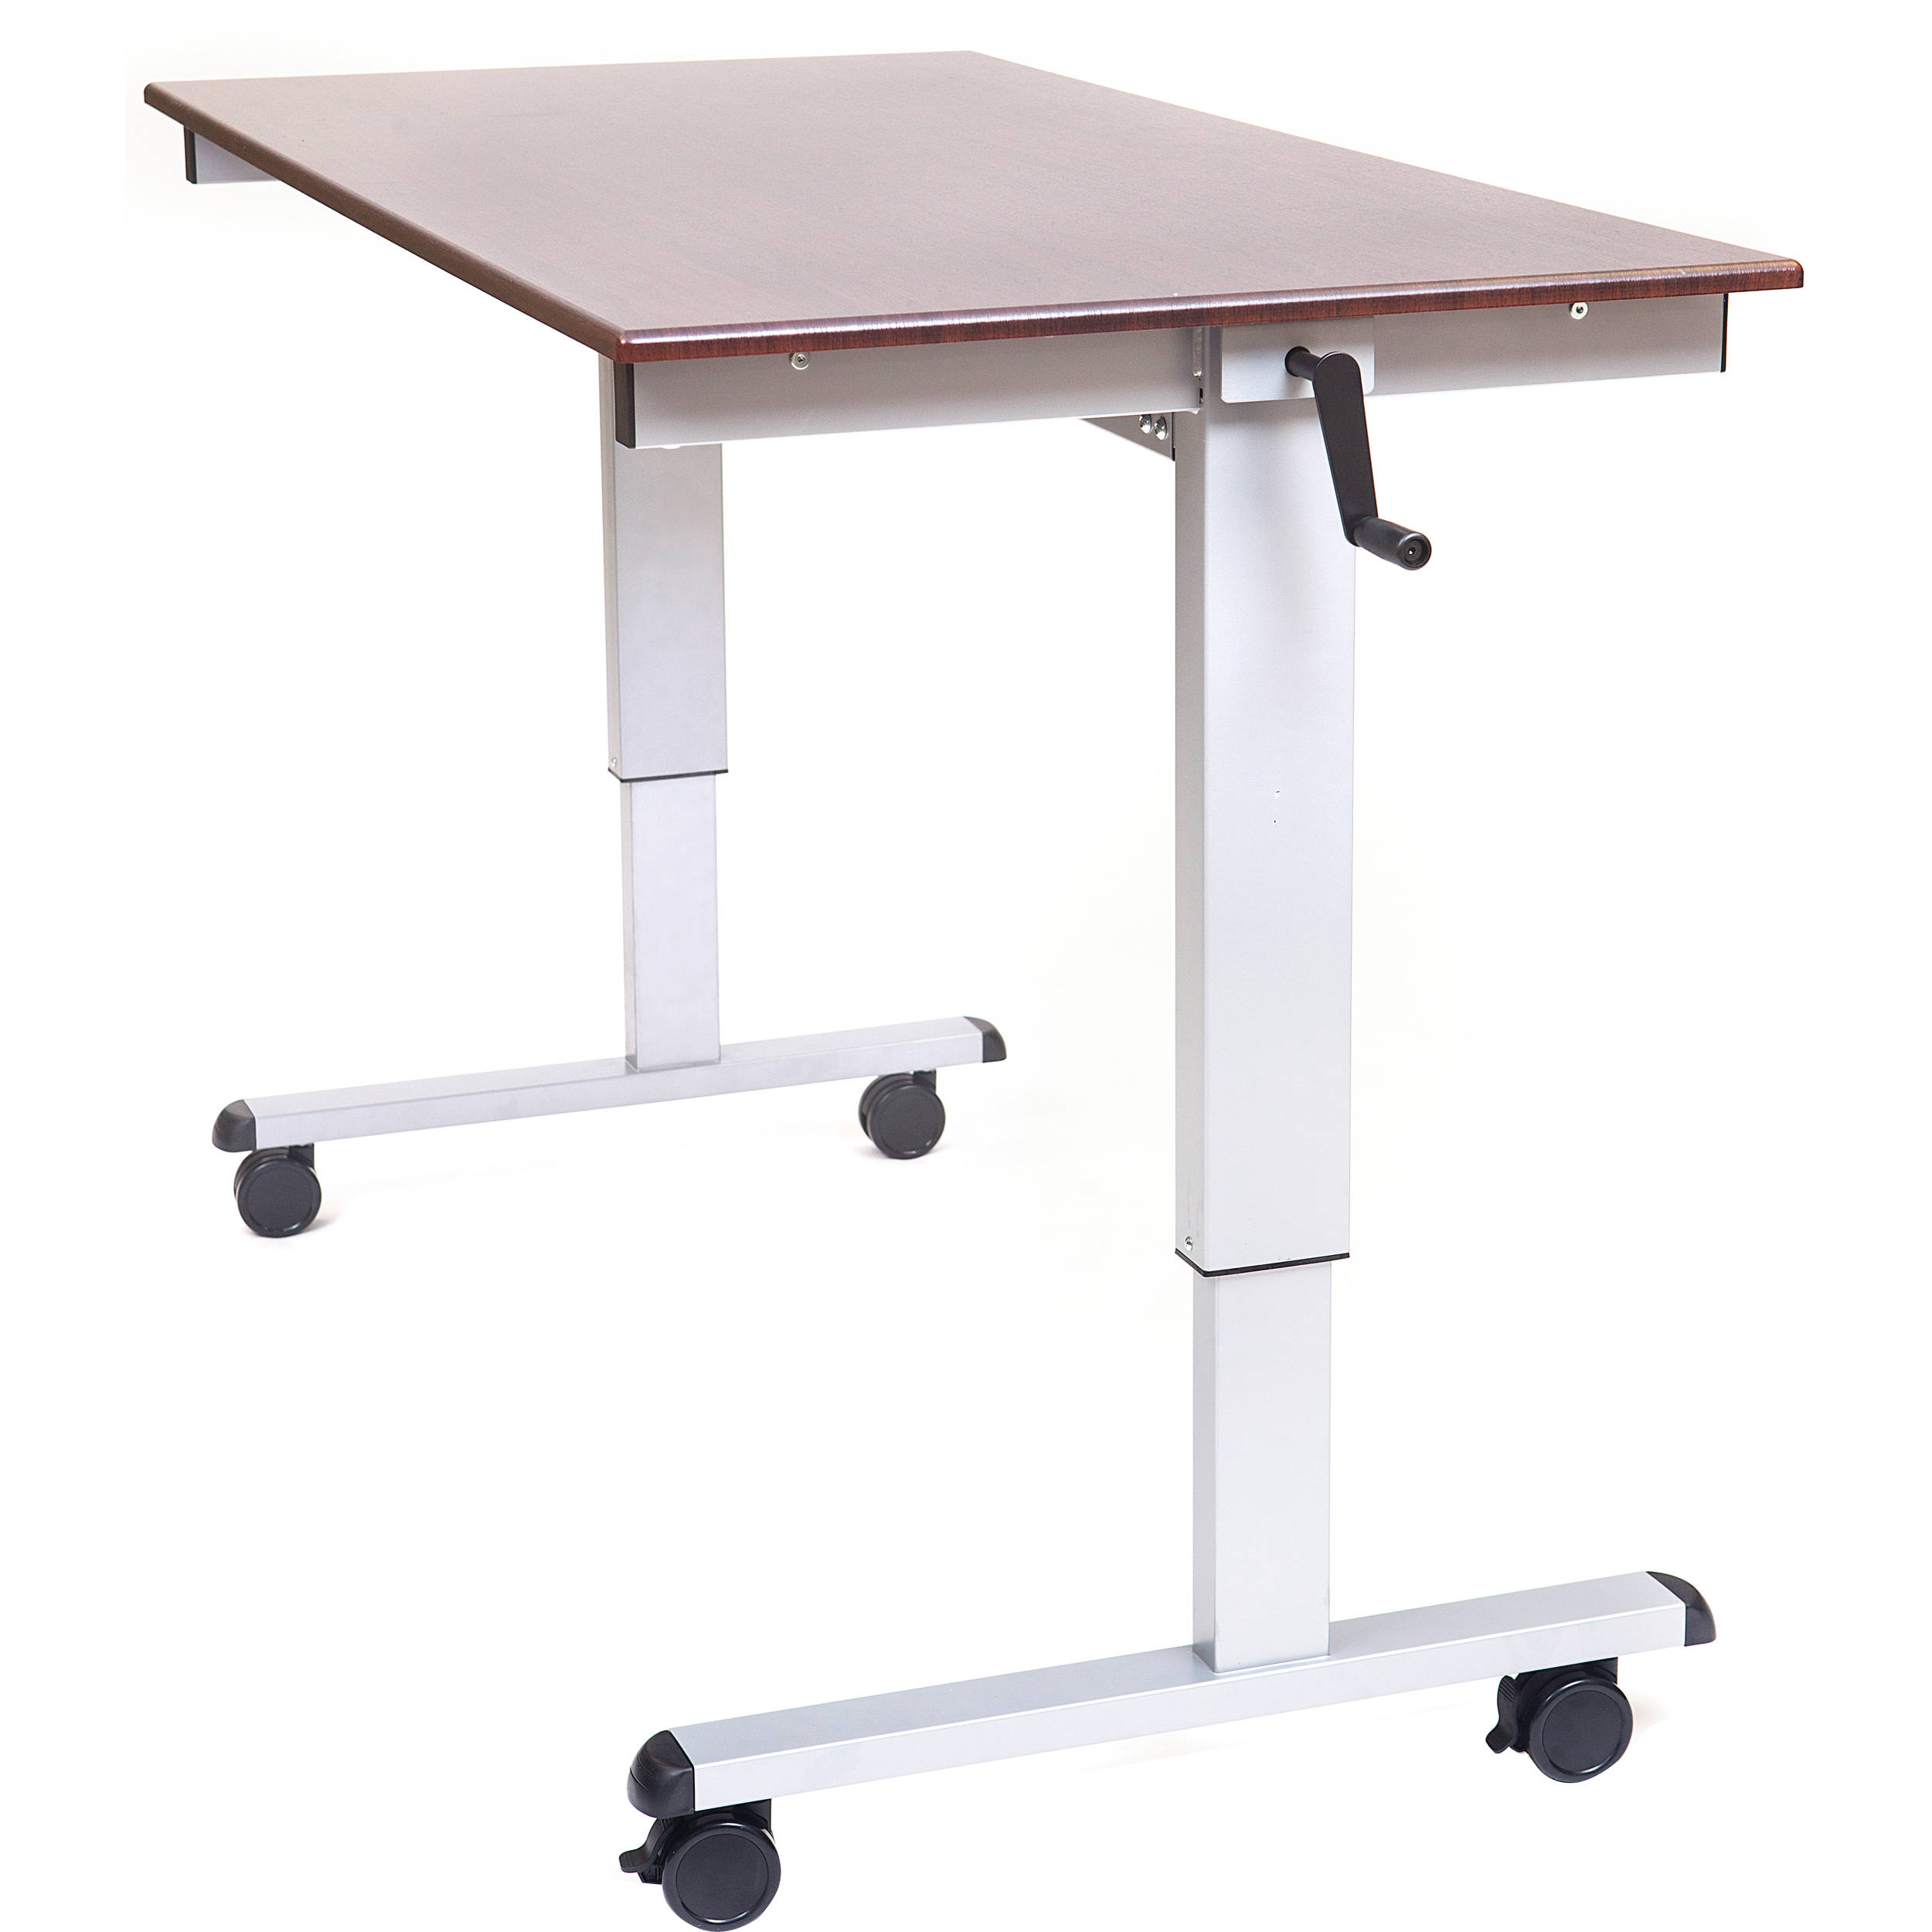 Luxor 60 crank adjustable stand up desk dark walnut desk silver frame